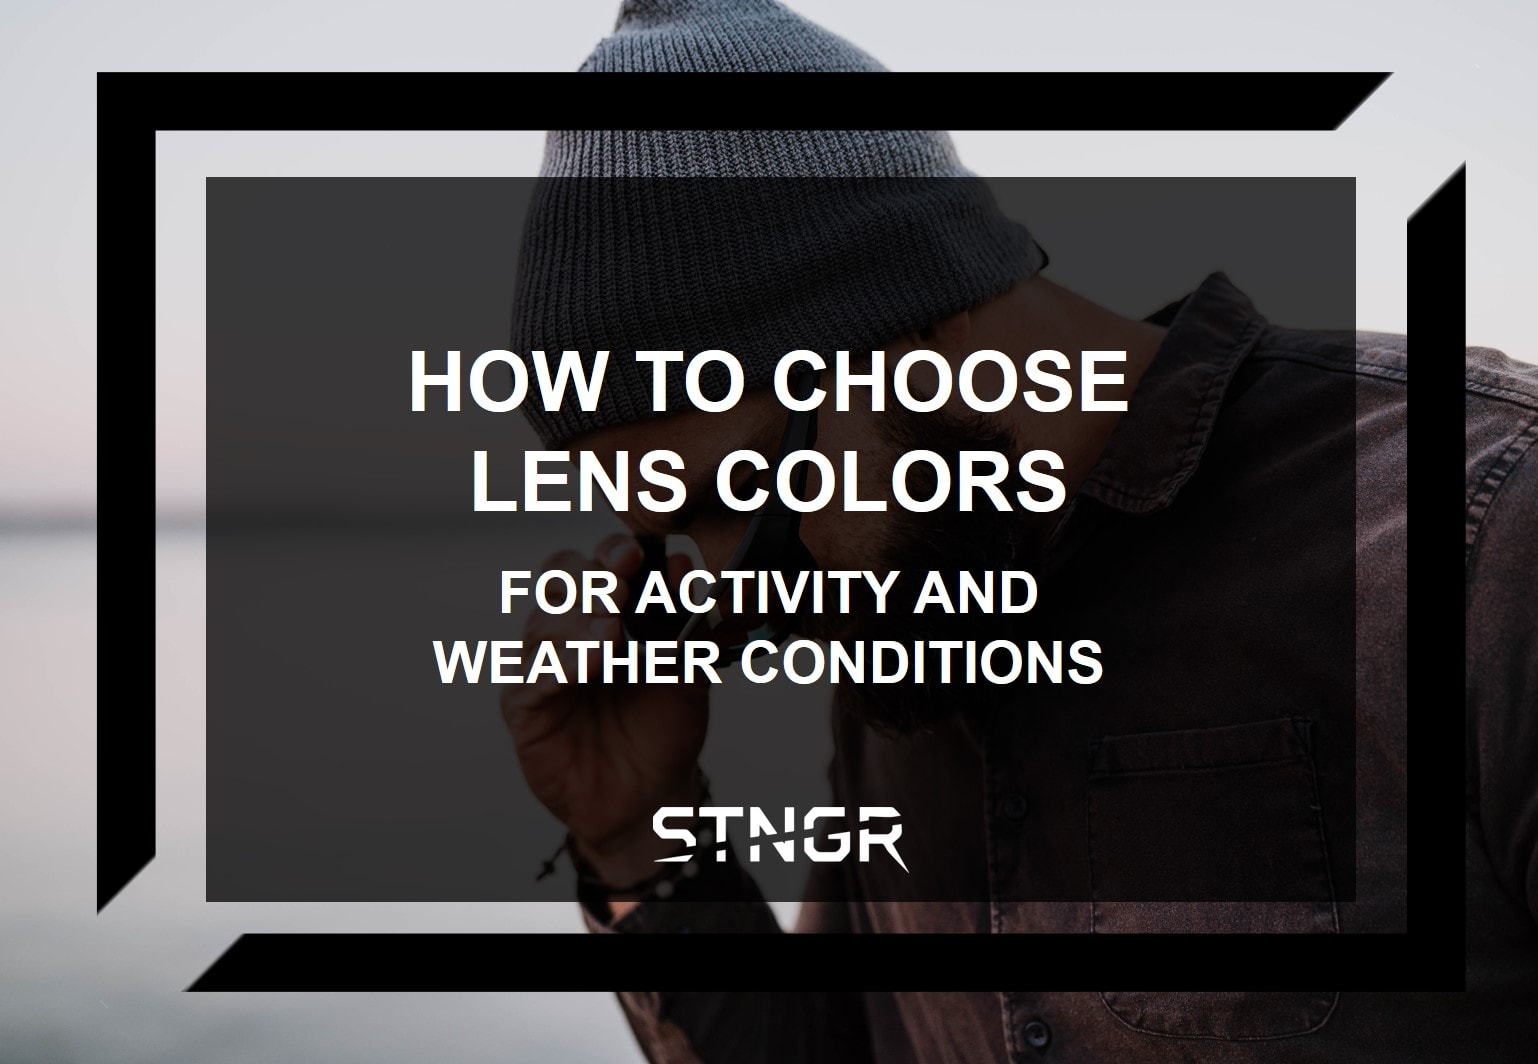 How to Choose Lens Colors for Activity and Weather Conditions